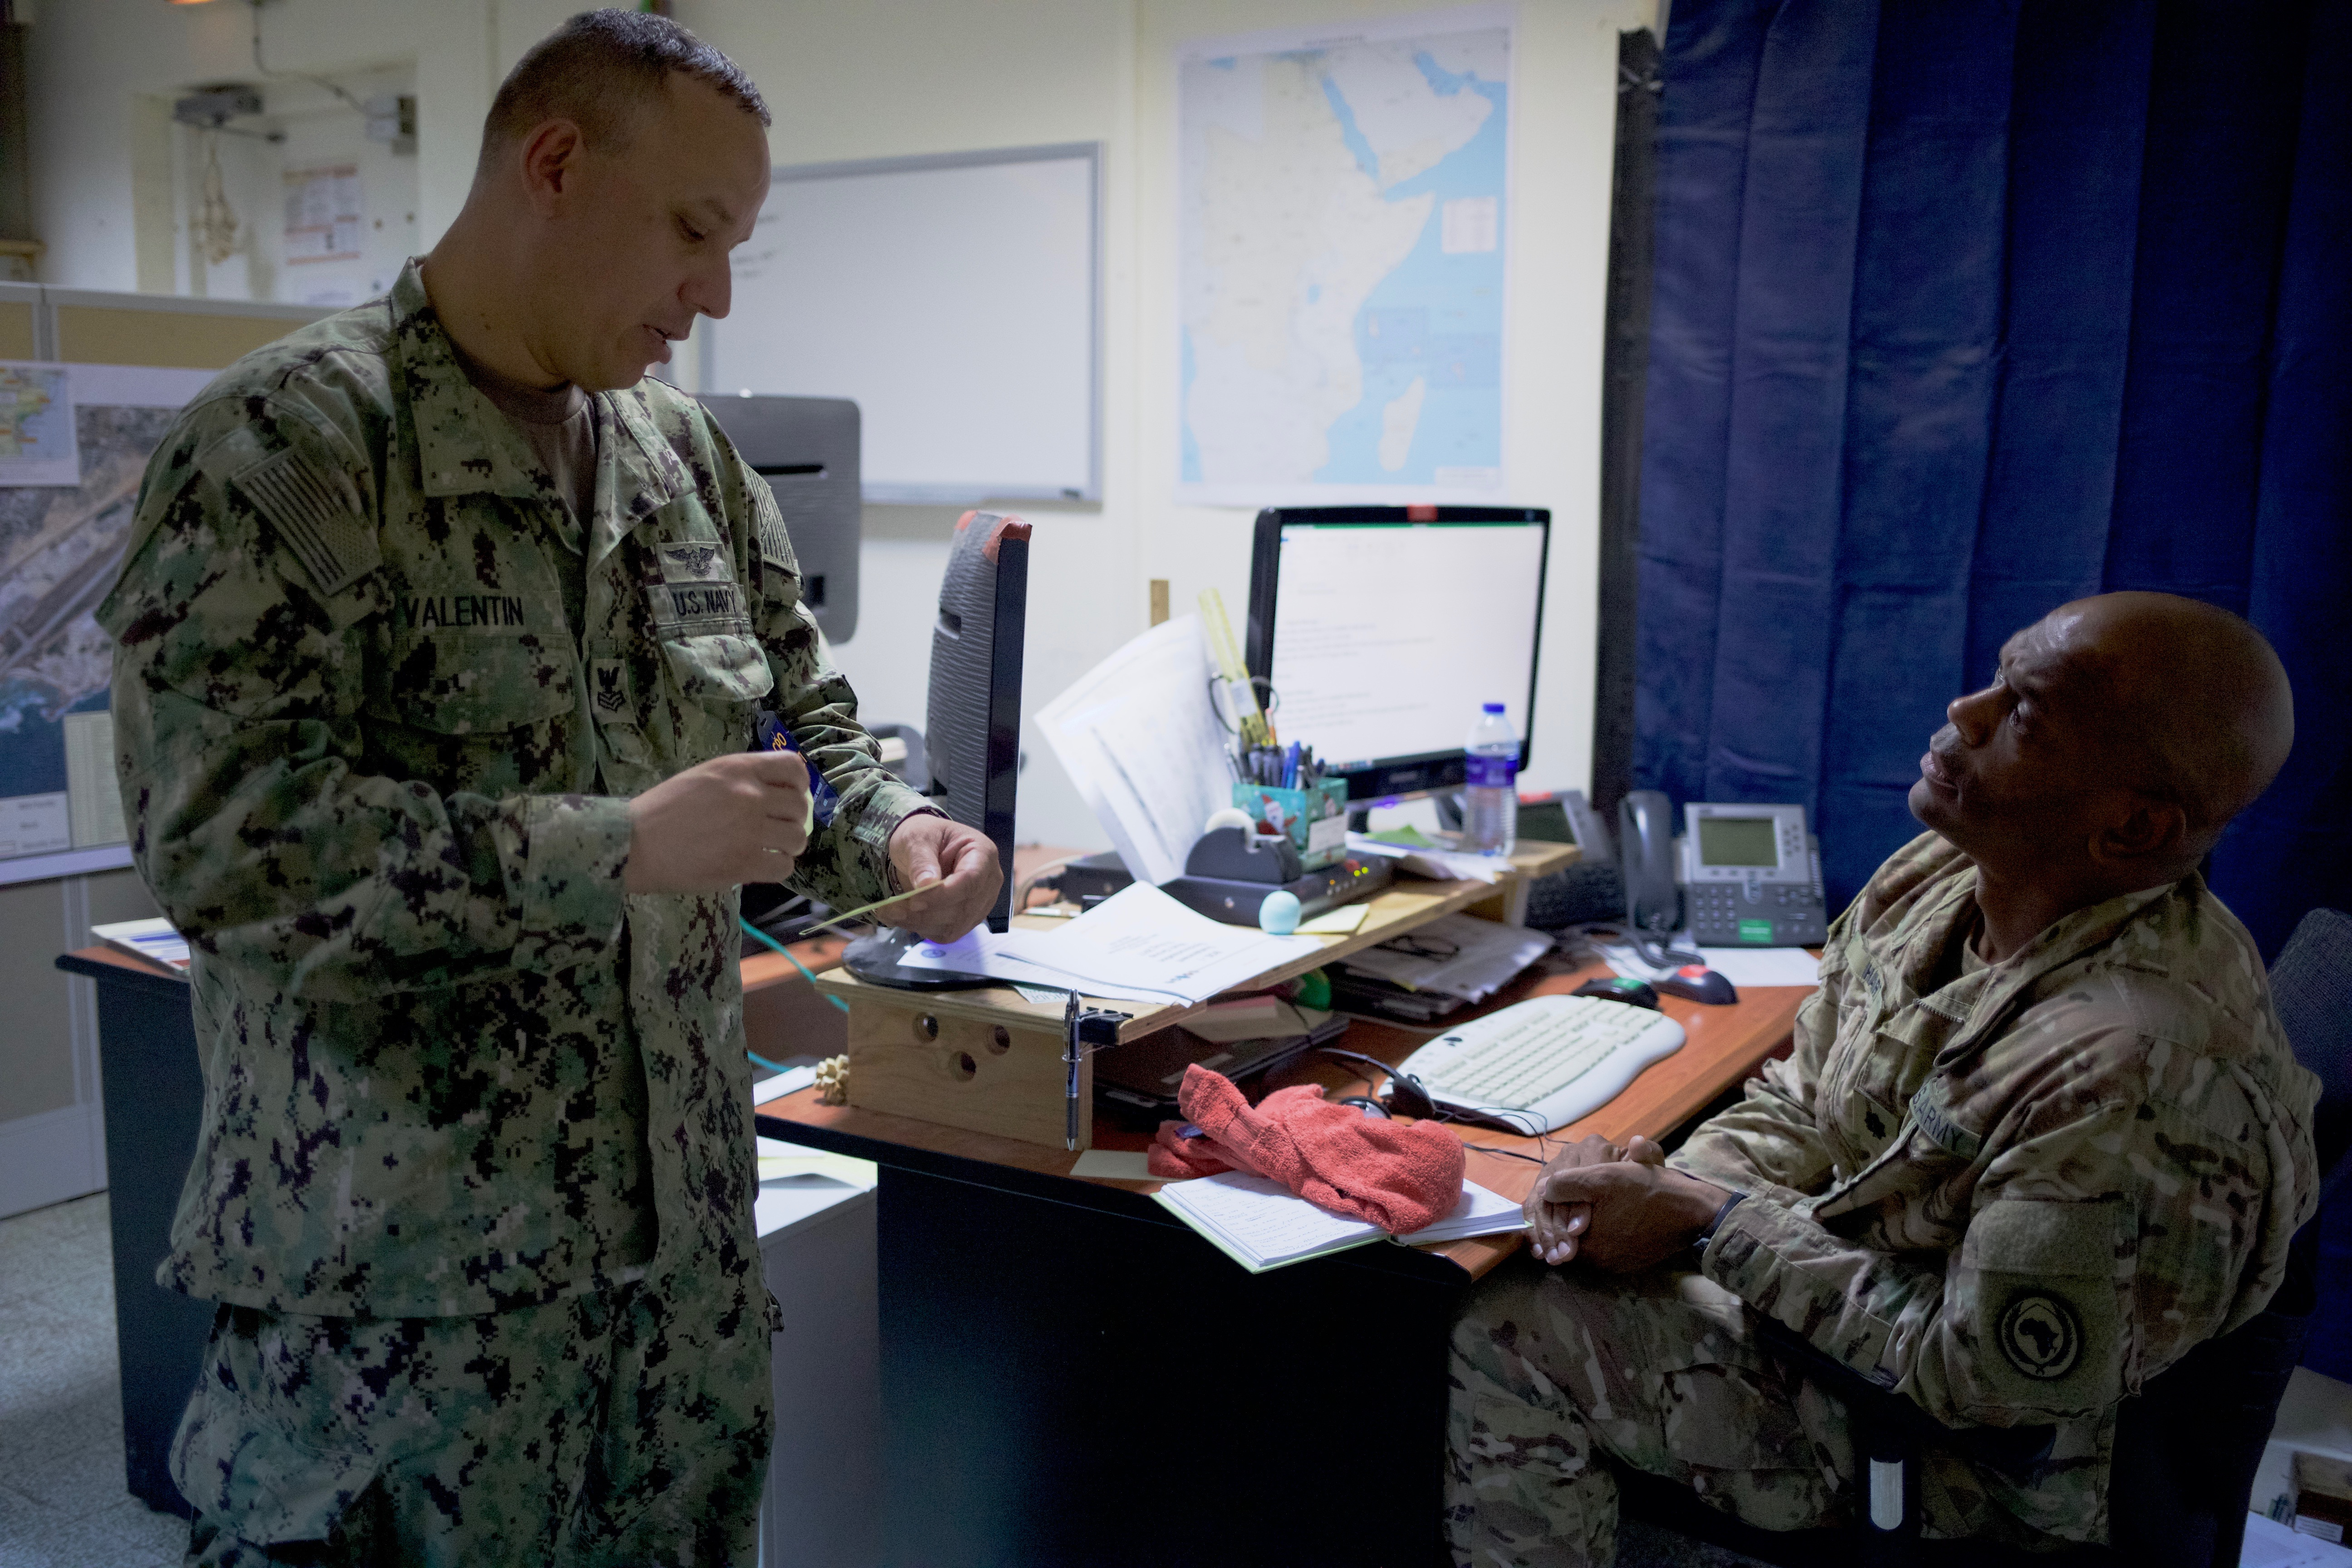 U.S. Navy Petty Officer 1st Class Francisco Valentin, fuels management specialist with the Combined Joint Task Force-Horn of Africa Logistics Directorate's Base Operating Support-Integrator office, provides updates on support resources to Lt. Col. Derek Hart, director of BOS-I, at Camp Lemonnier, Djibouti, August 18, 2017.  Hart is responsible for overseeing the continuous flow and coordination of mission-essential resources to forward-deployed U.S. service members throughout Somalia. U.S. Africa Command designated CJTF-HOA as BOS-I in August 2016, putting the 500-person task force in charge of coordinating the efficient use of mission resources to sustain U.S. forces in forward operating locations in Somalia. (U.S. Army photo by Capt. Alán Ortiz)